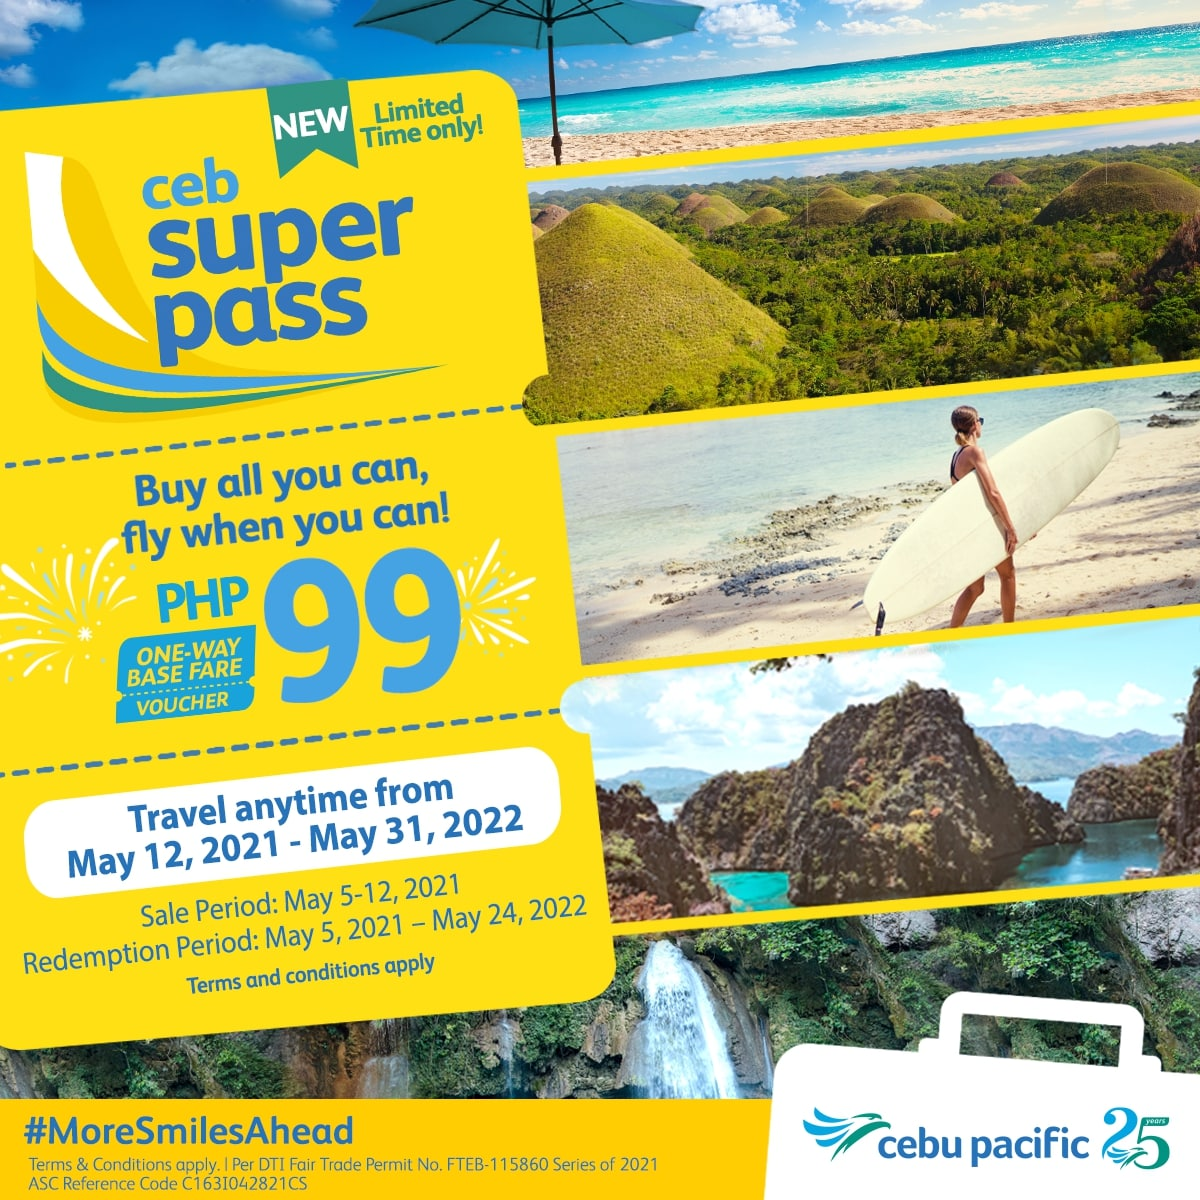 Buy all you can, fly when you can with the Cebu Pacific Super Pass